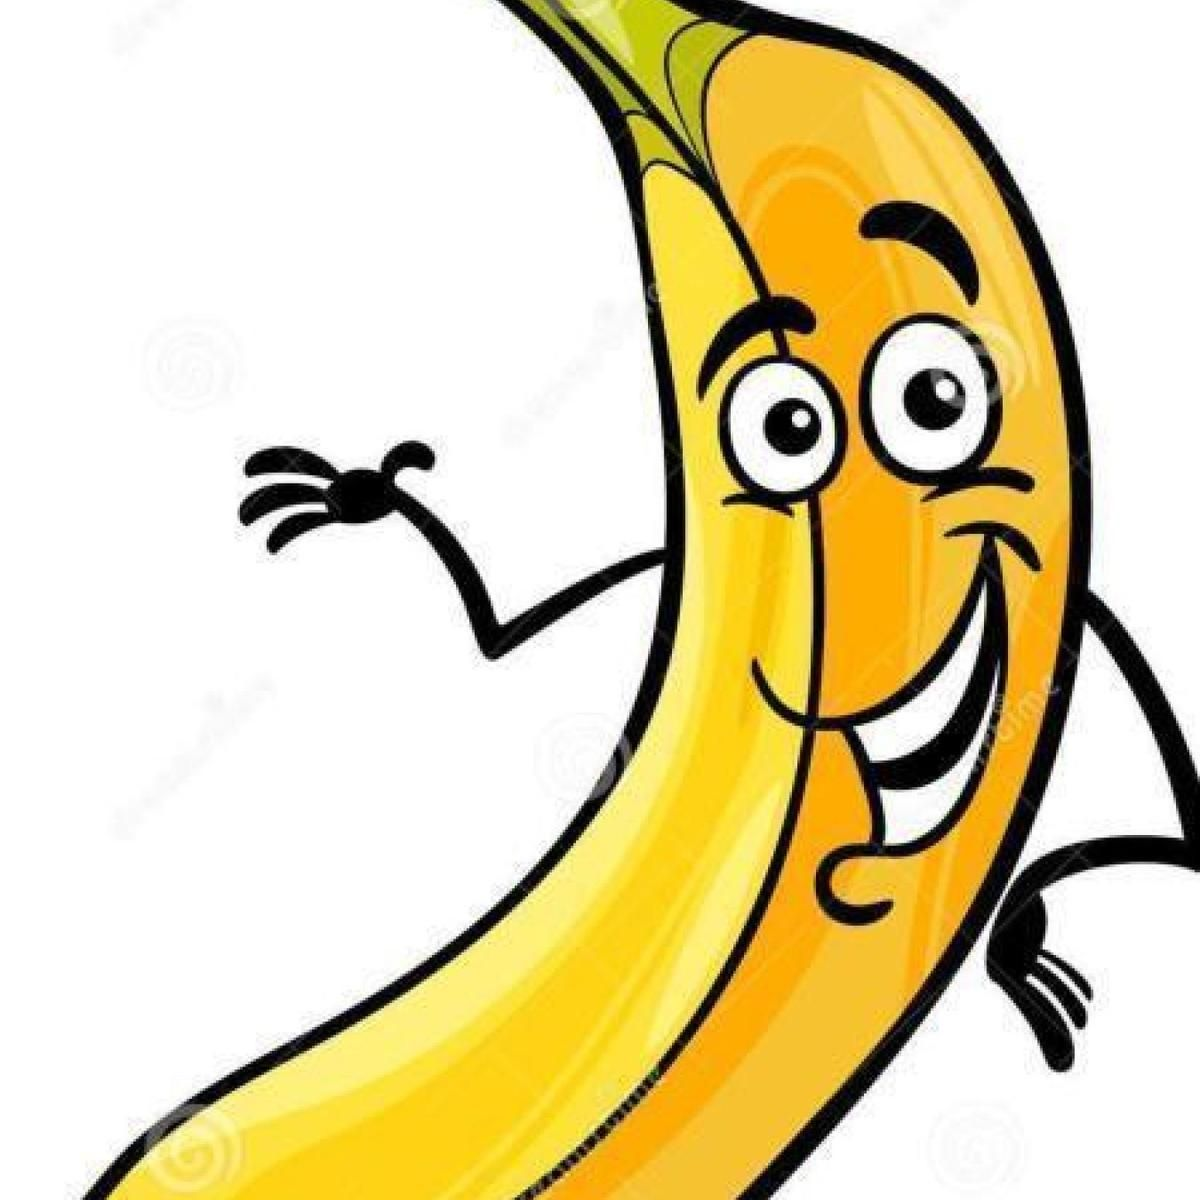 Got left over banana peels? don't throw them away, follow these tips and then toss em!